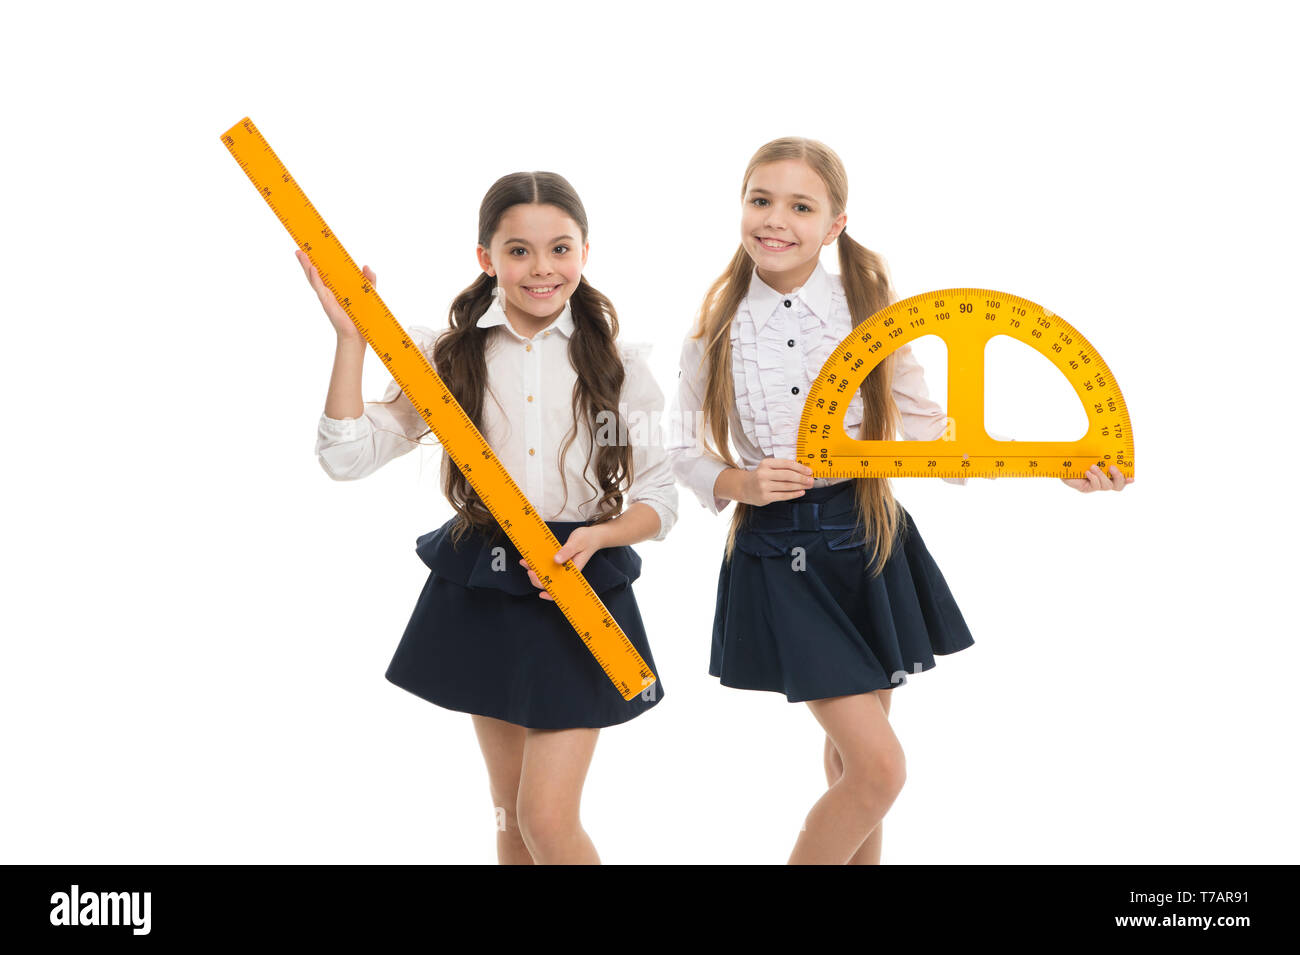 Pupils cute girls with big rulers. Favorite school subject. Education and school concept. School students learning geometry. Kids school uniform isolated white. STEM concept. Draw geometric figures. - Stock Image